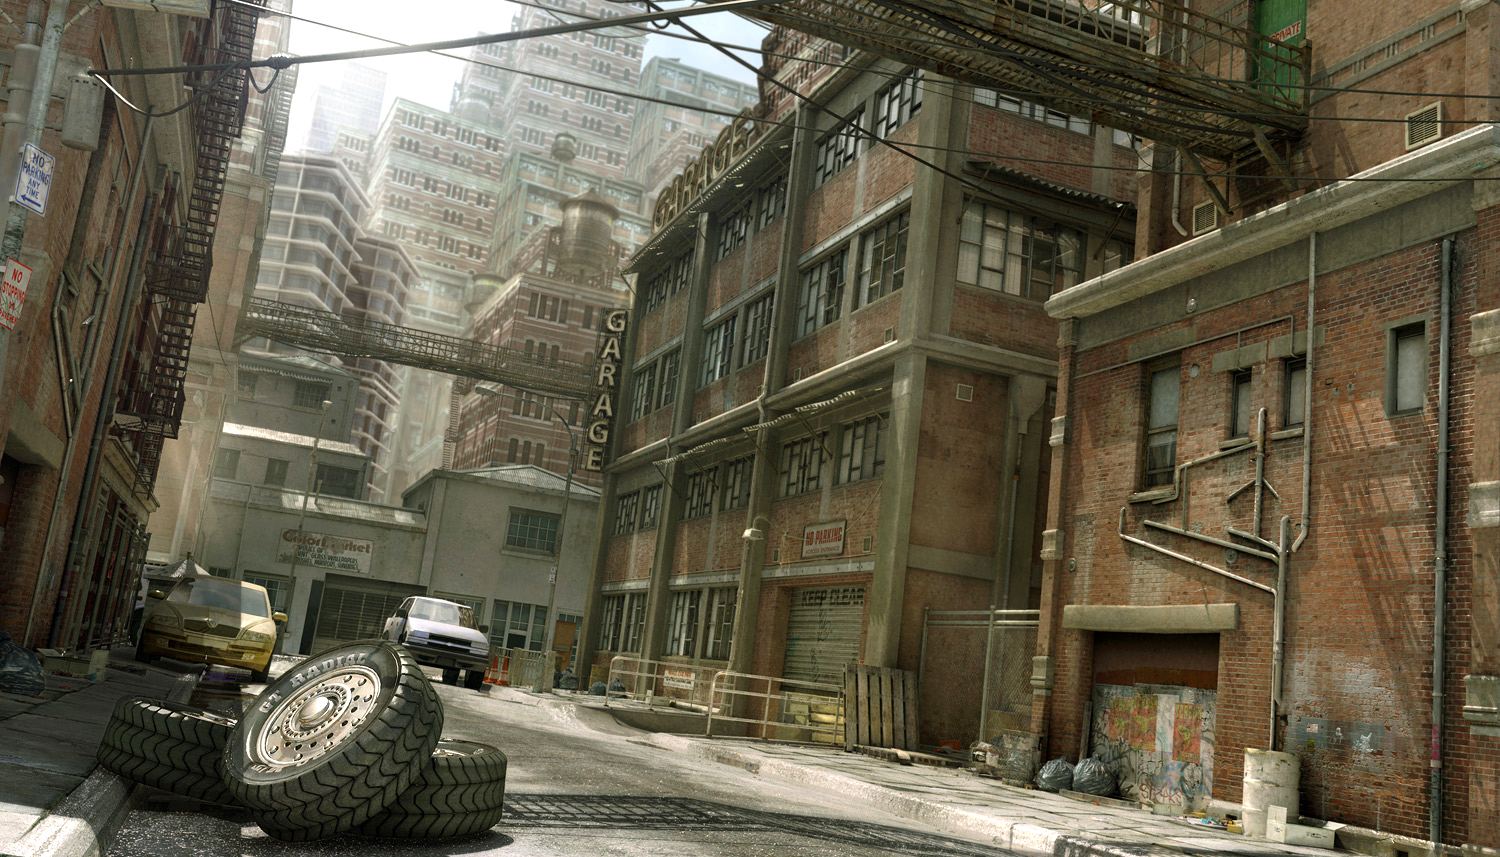 ghetto street backgrounds - photo #16